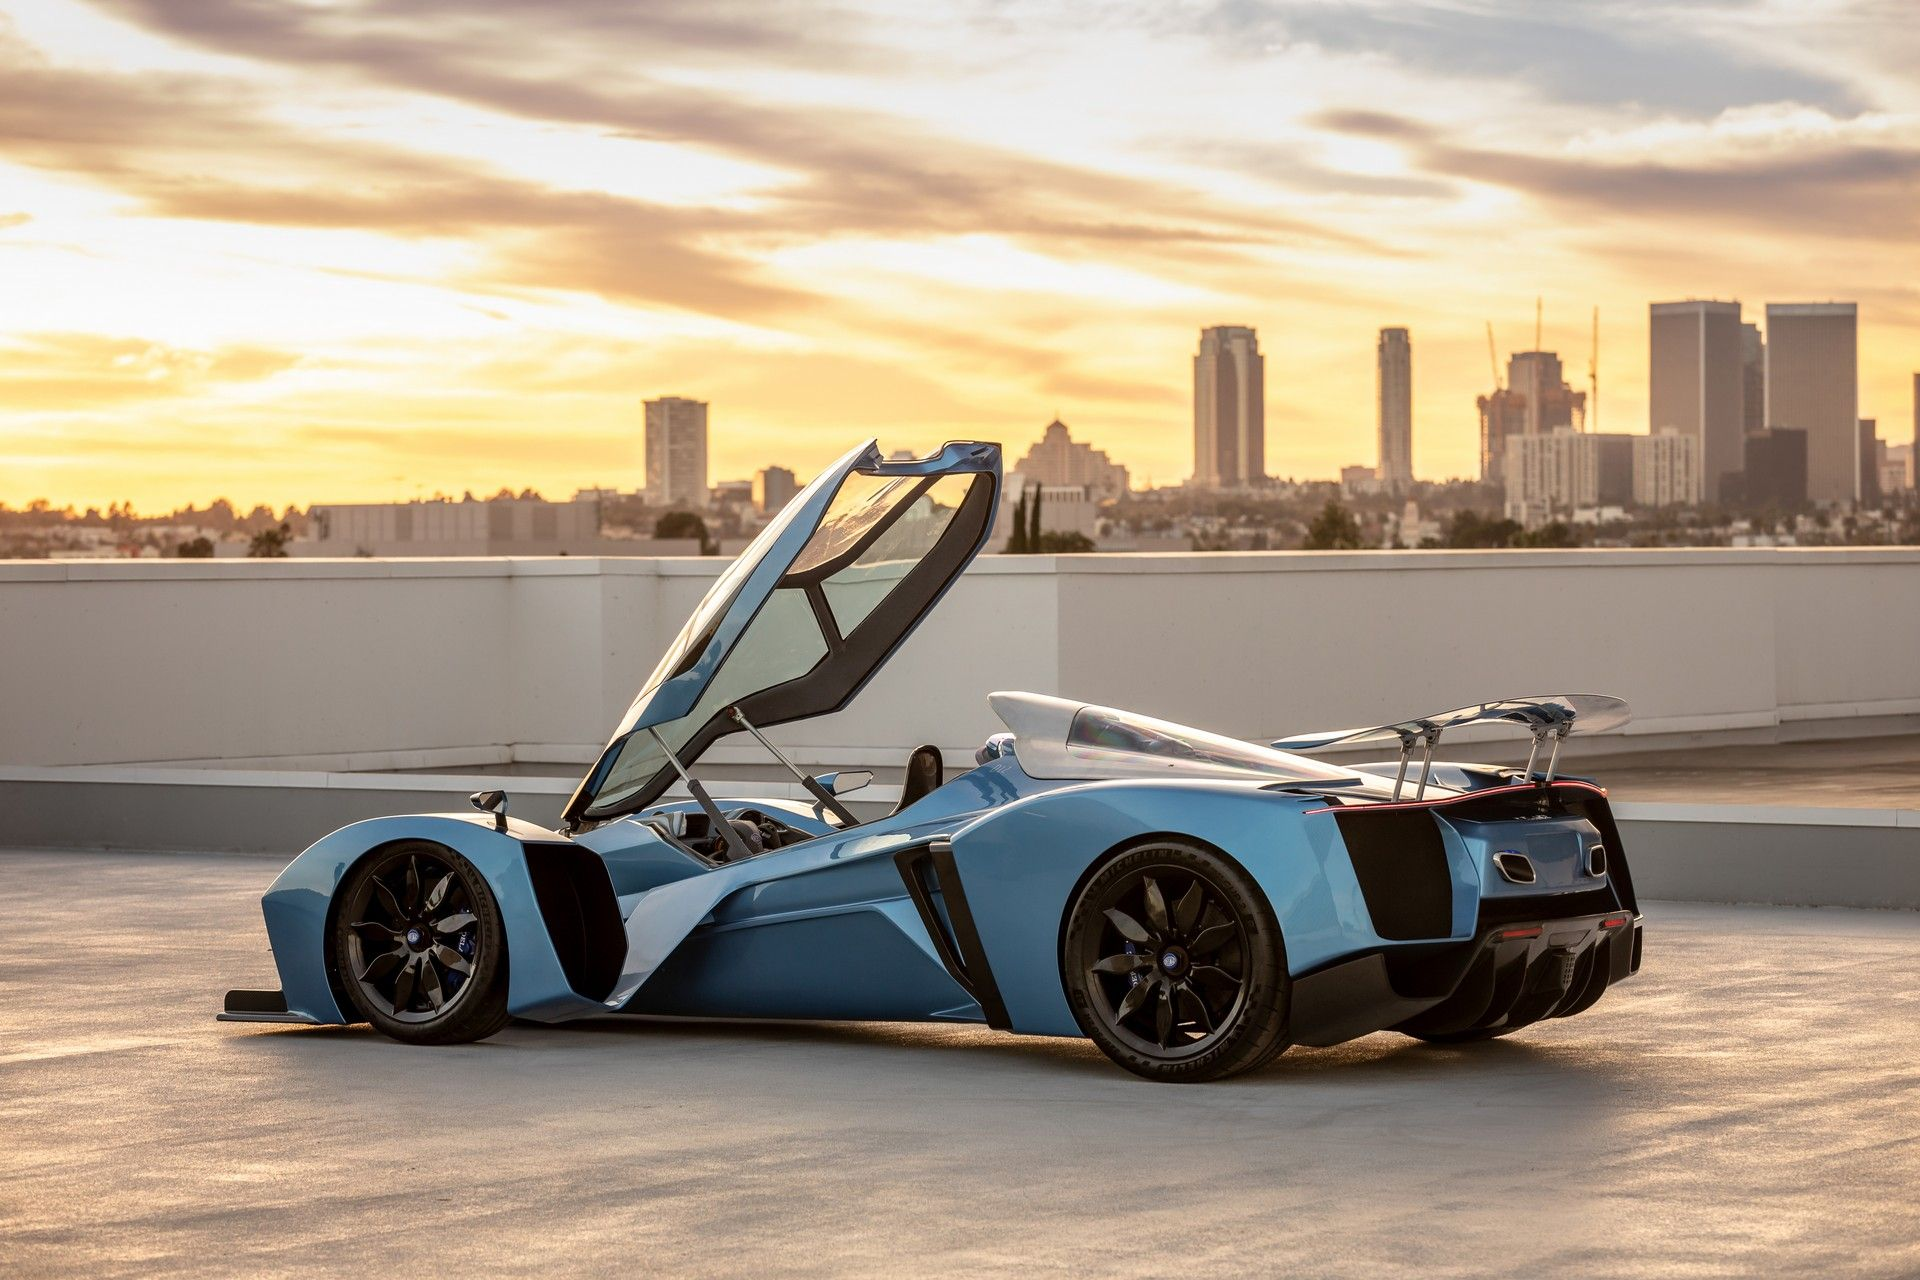 Delage Is Back With An F1 Inspired Supercar That Packs Up To 1 100 Hp Carscoops In 2020 Super Cars Fast Cars Car